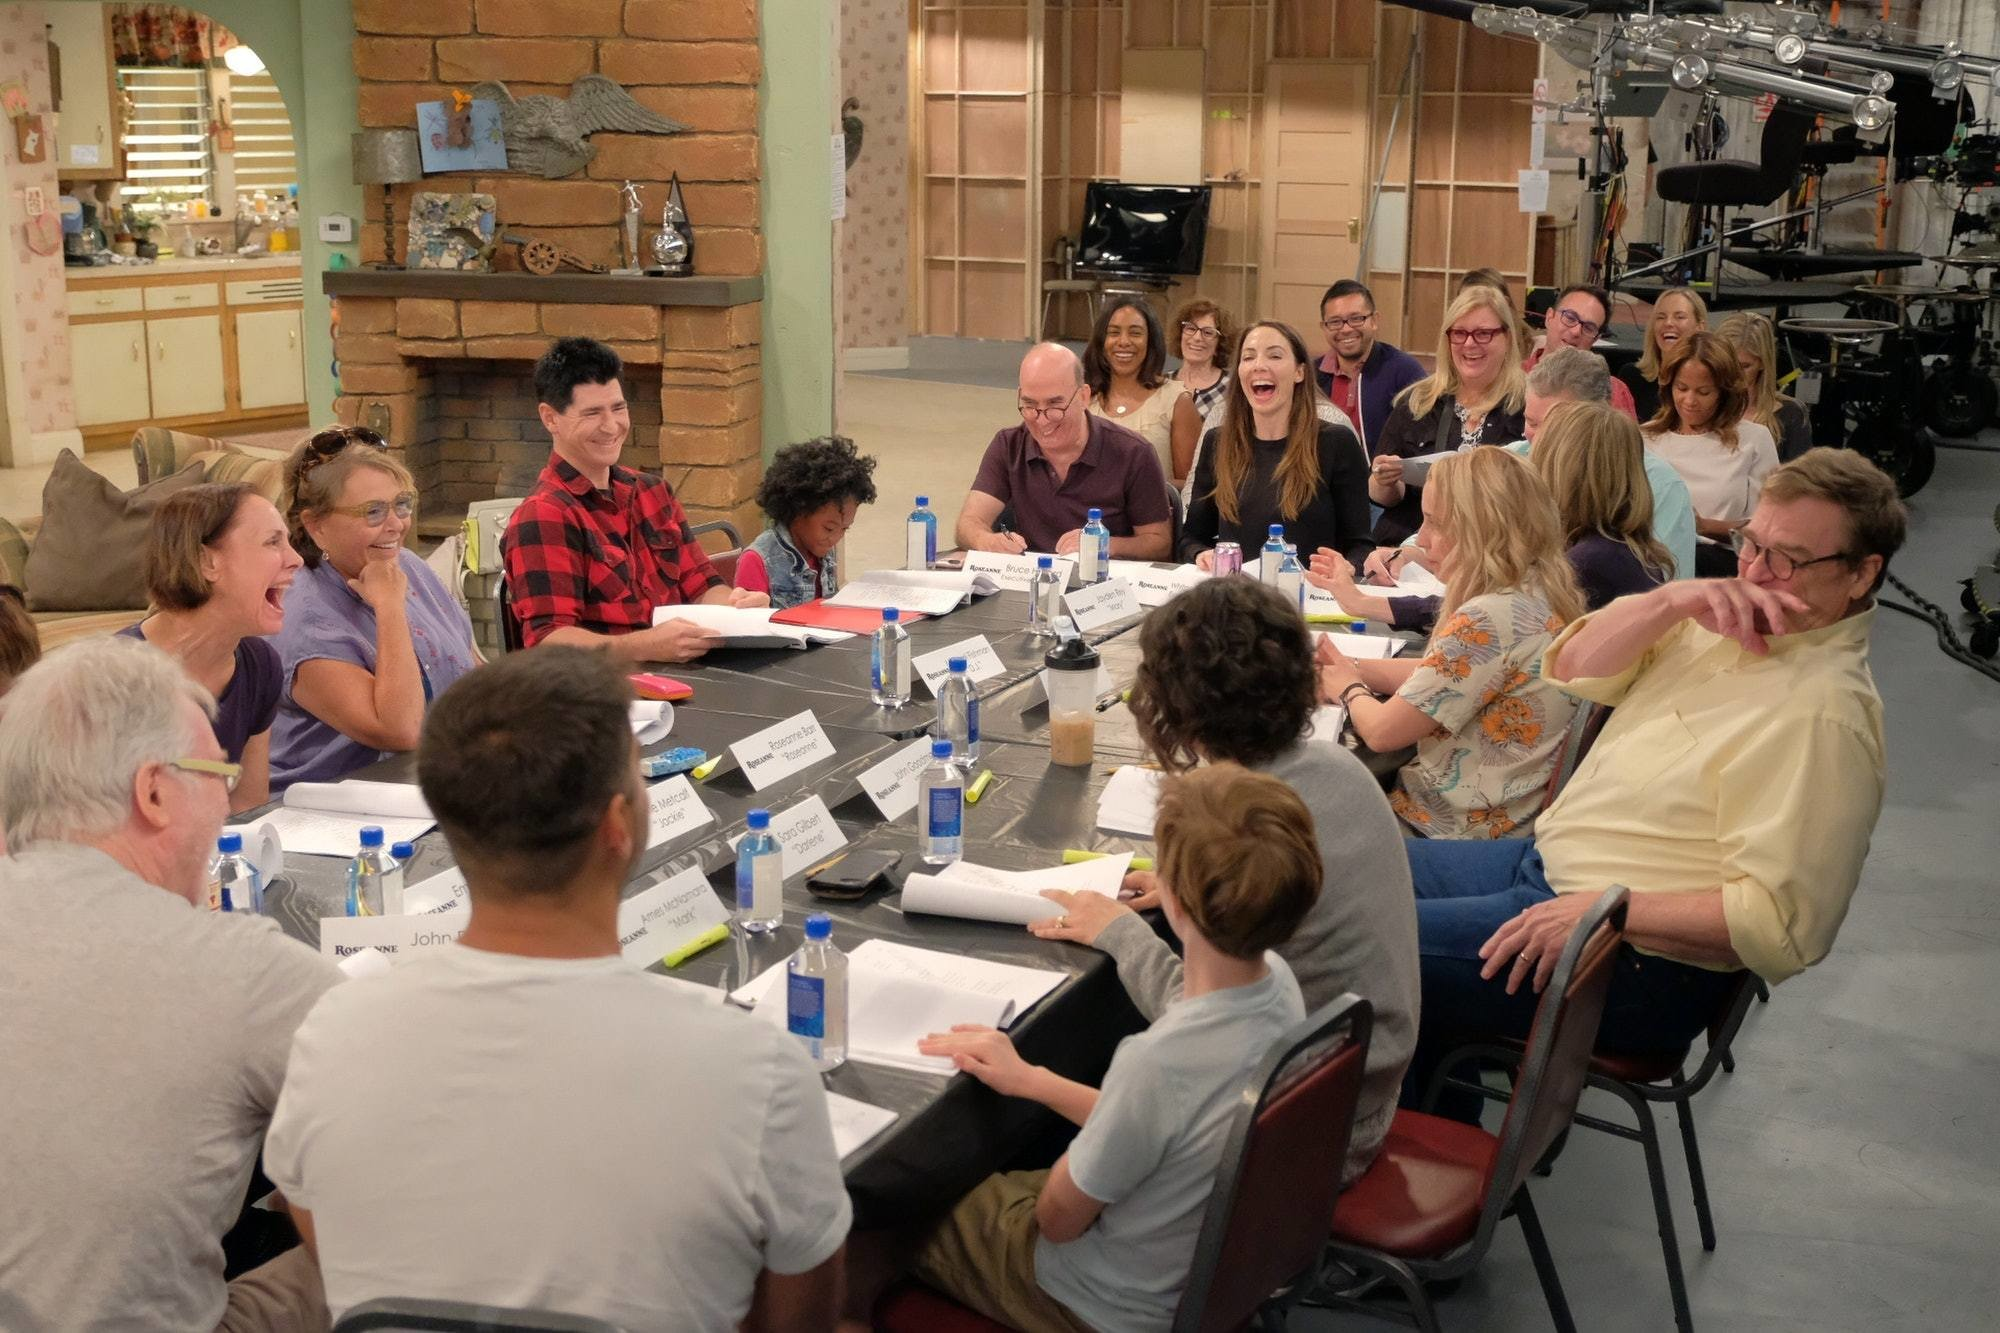 'Roseanne' Cast Is Reunited in Photo From Revival's First Table Read